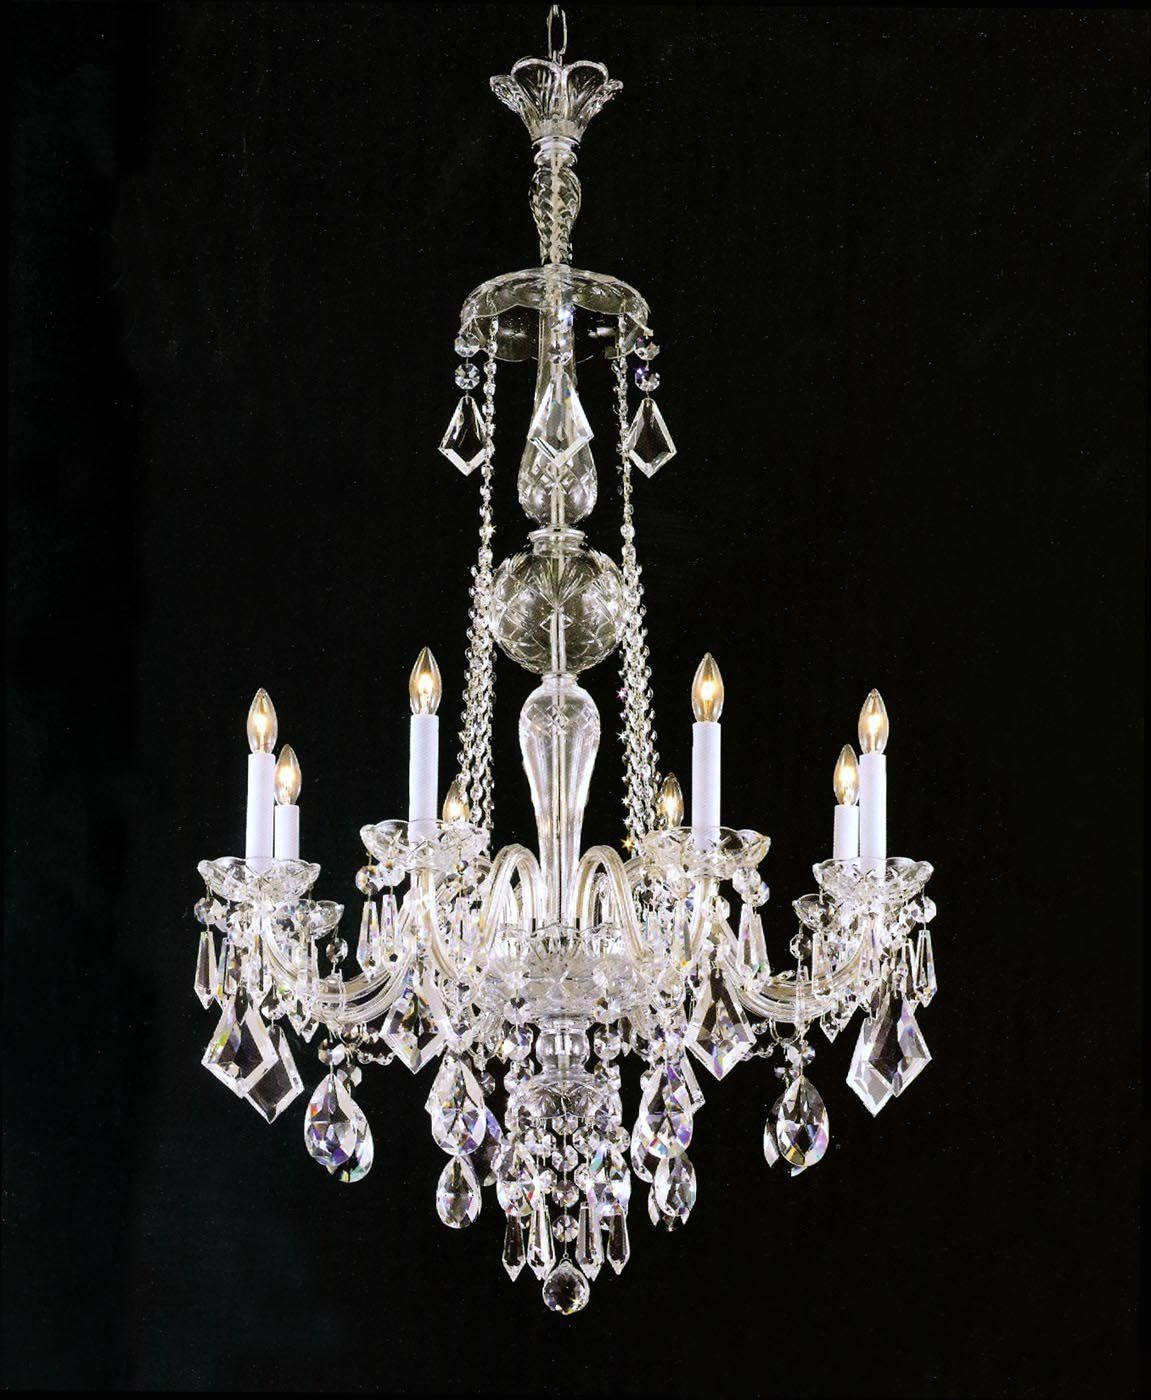 Current Obsession Lantern Chandeliers: Pin By Marcy Whittaker On Chandelier Obsession